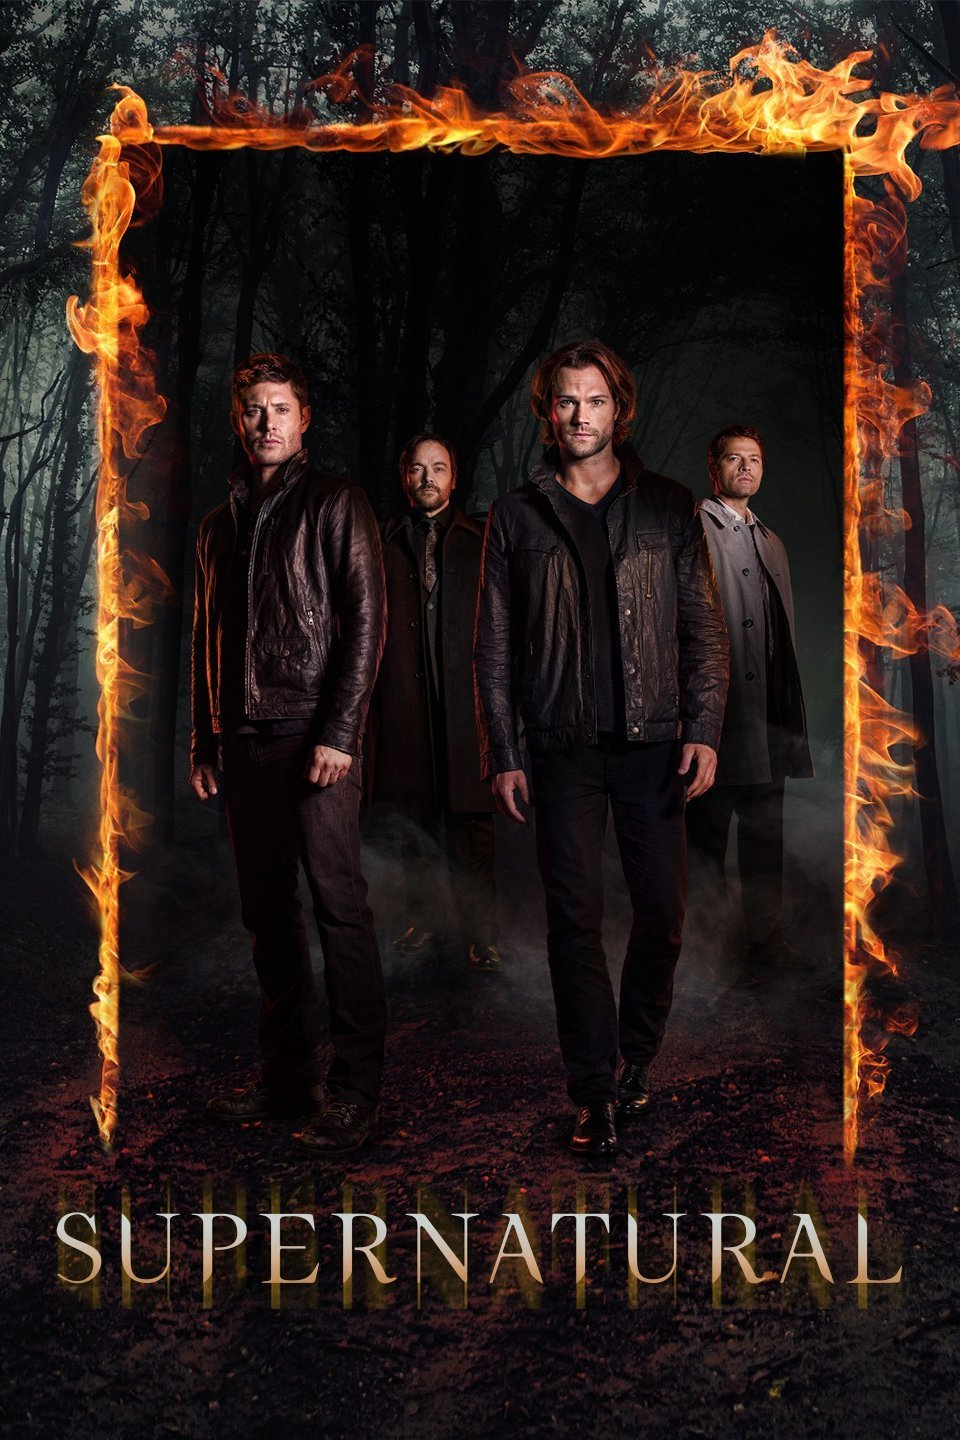 Supernatural Season 13 Episode 17 Download HDTV 480p 720p